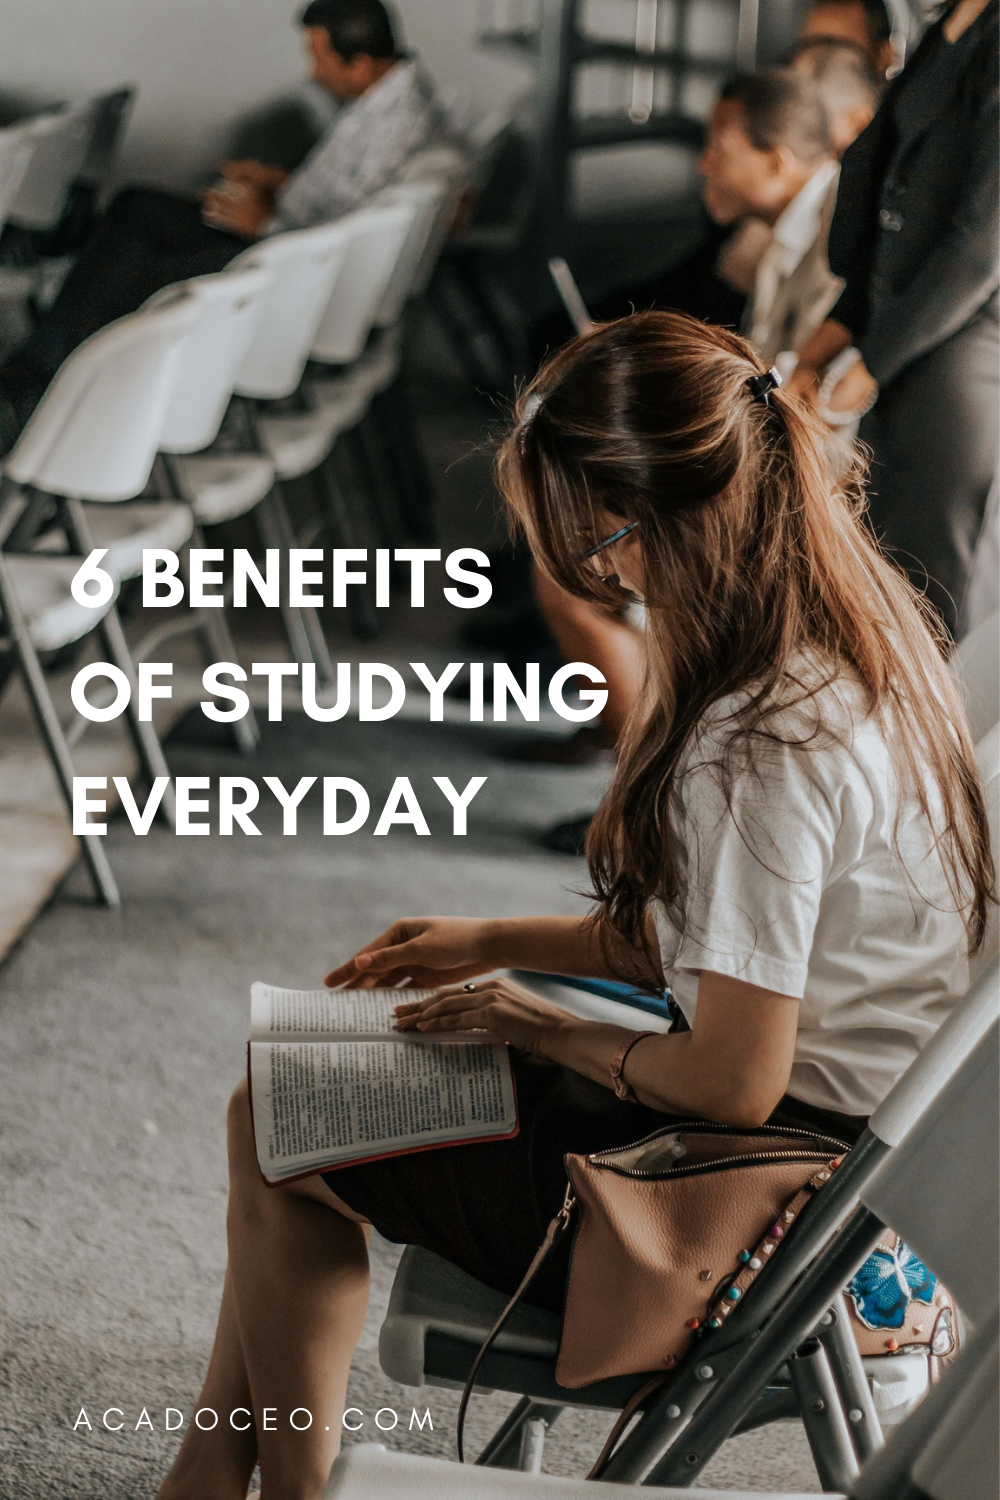 6 Benefits of Studying Everyday